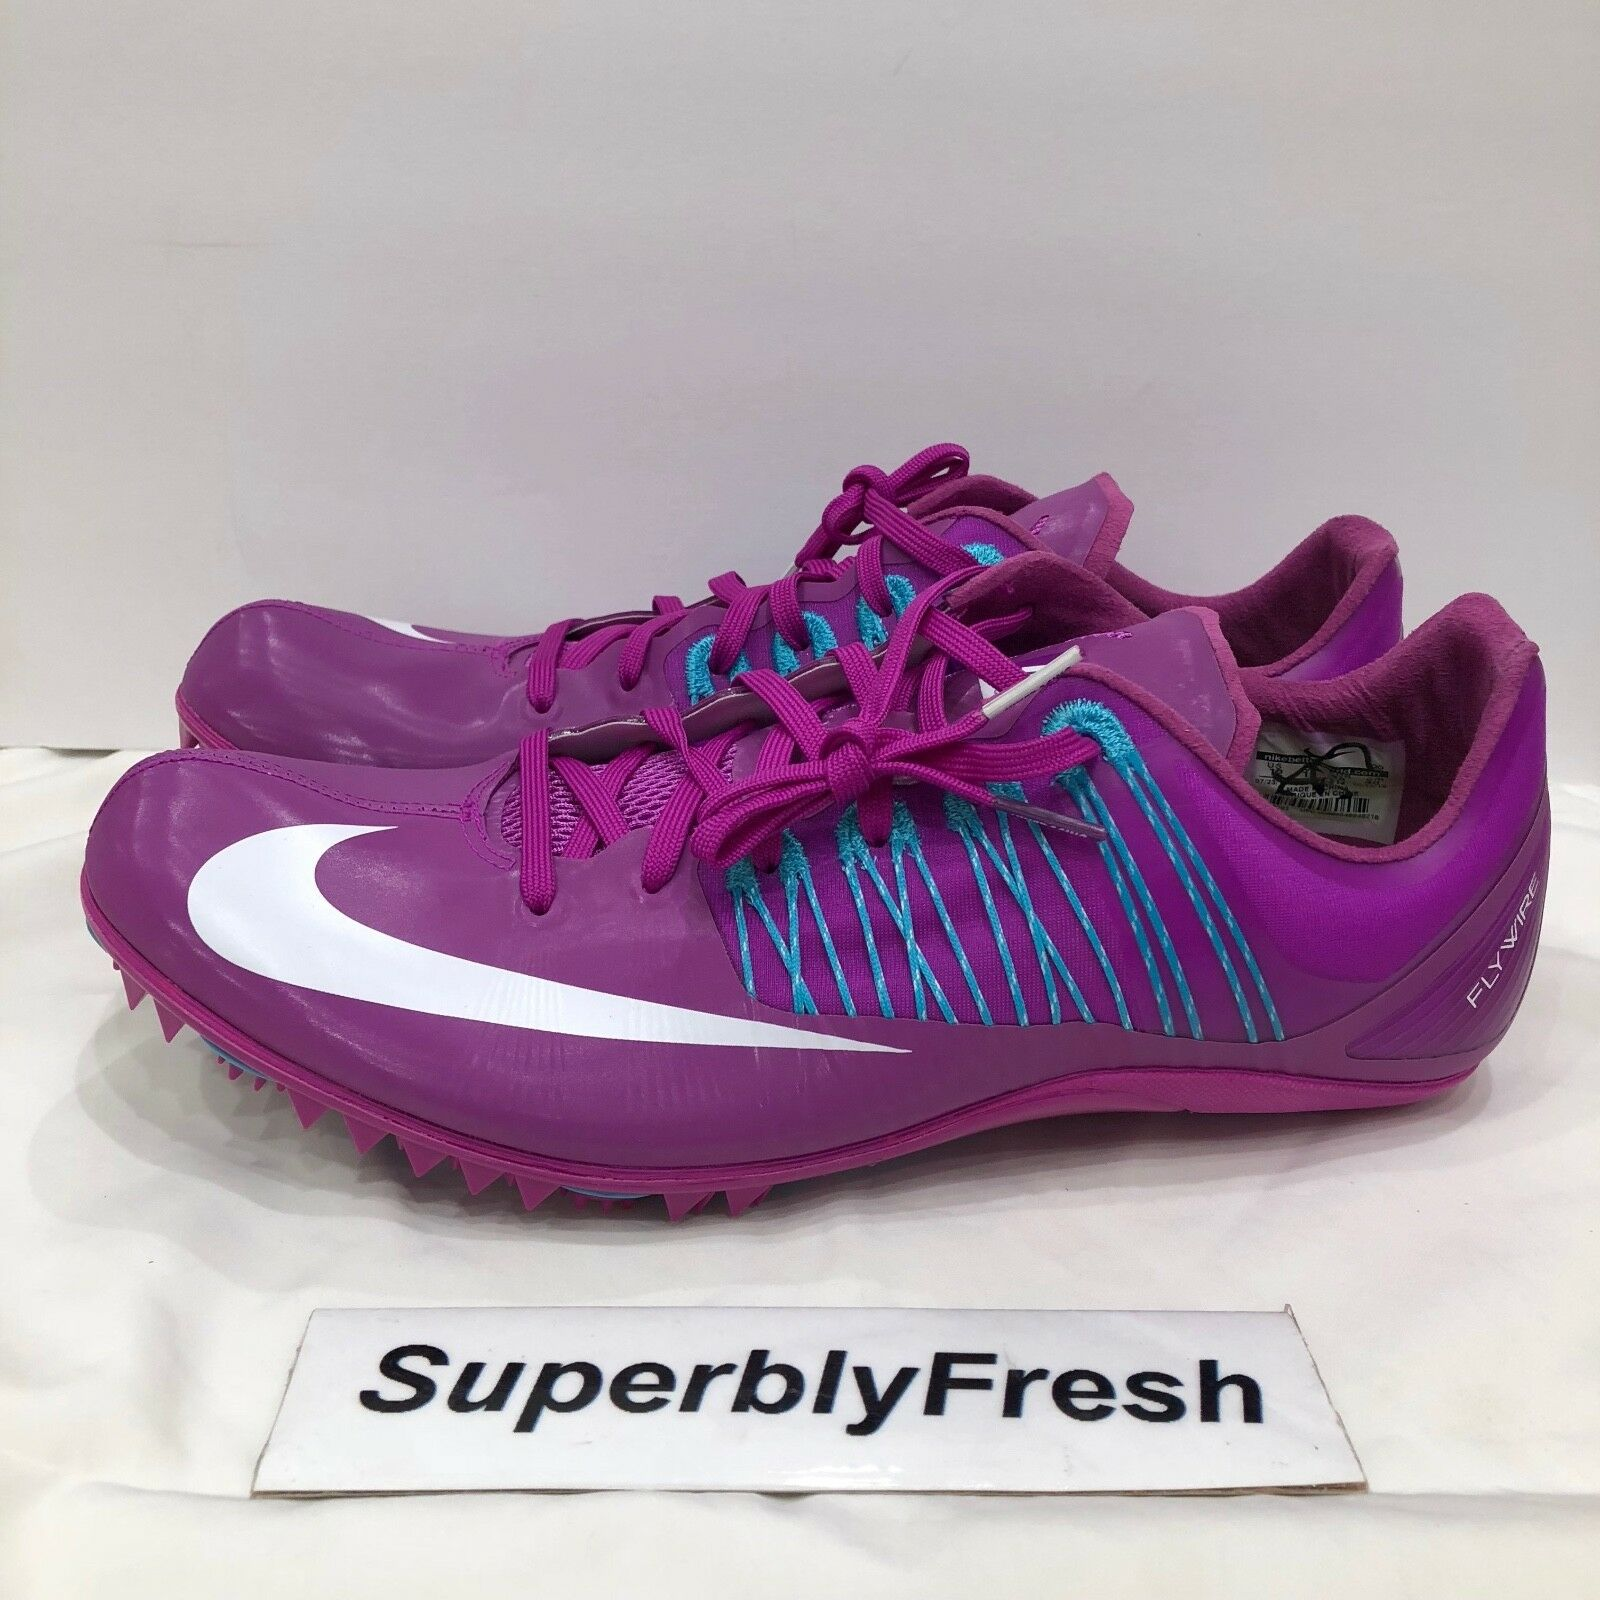 Casual wild Nike Zoom Celar 5 Track Sprint Shoes Price reduction